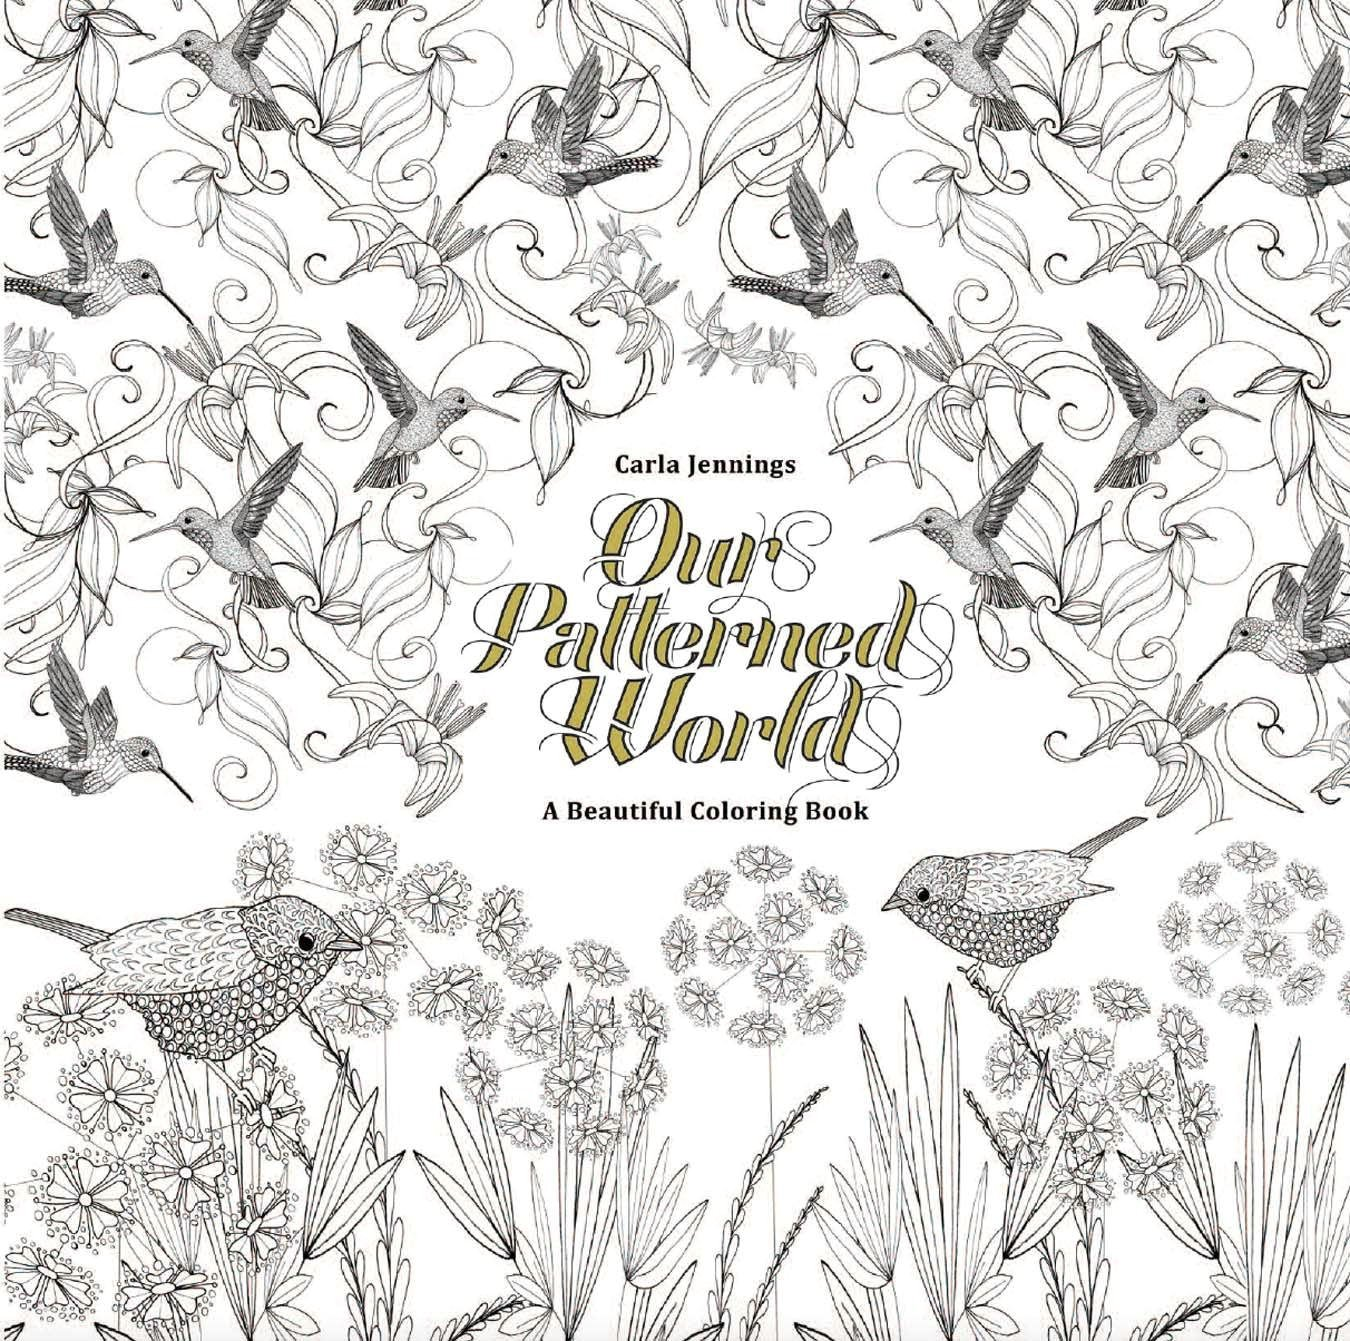 our-patterned-world-a-beautiful-coloring-book